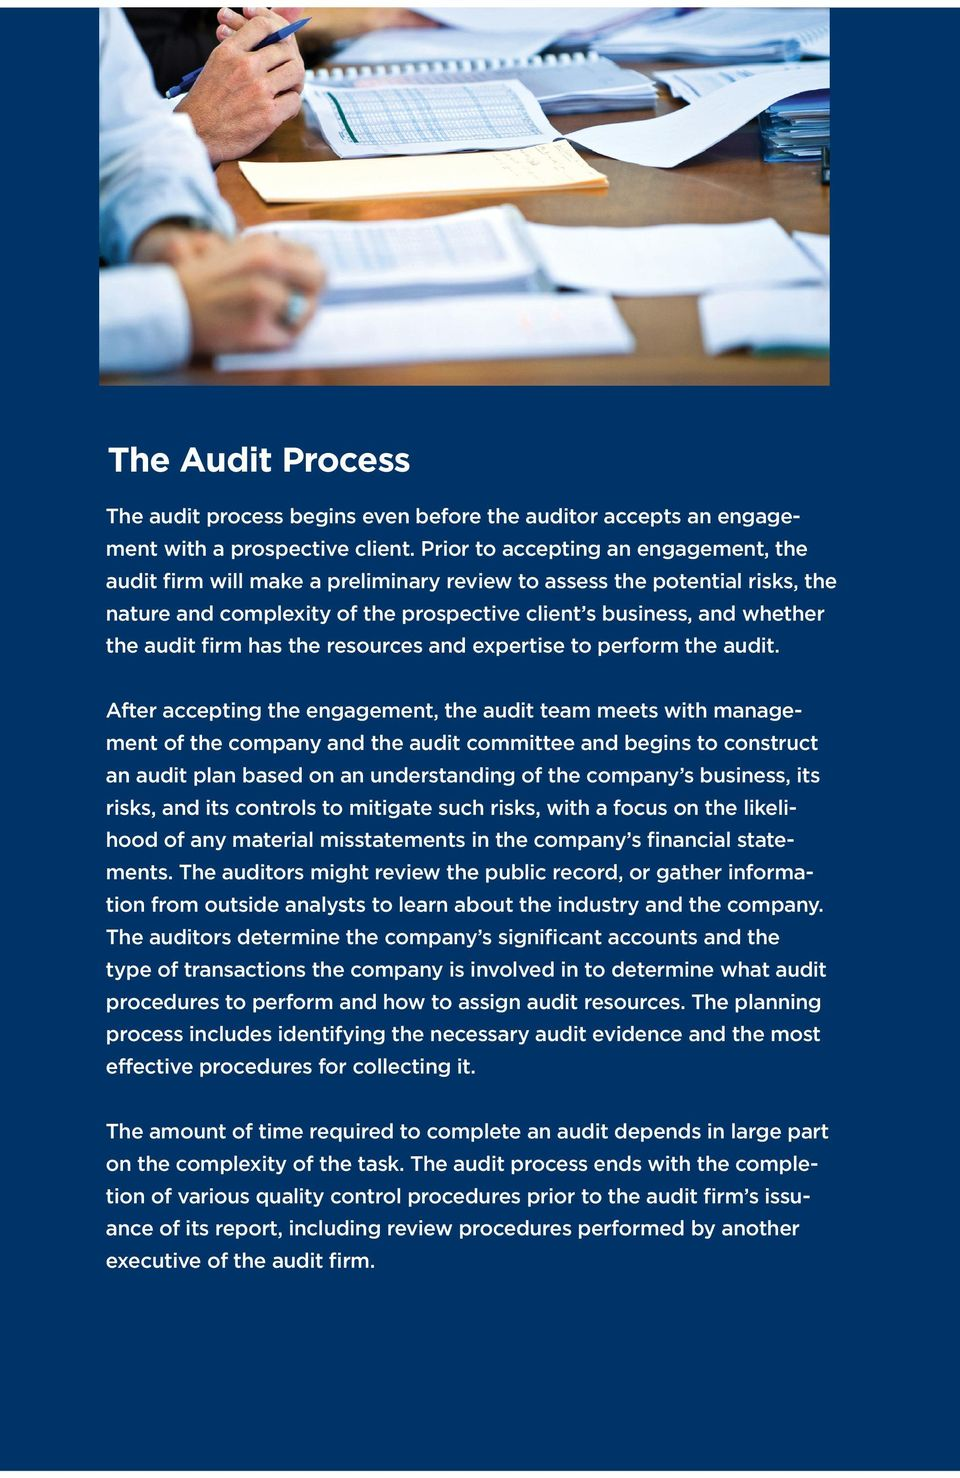 firm has the resources and expertise to perform the audit.